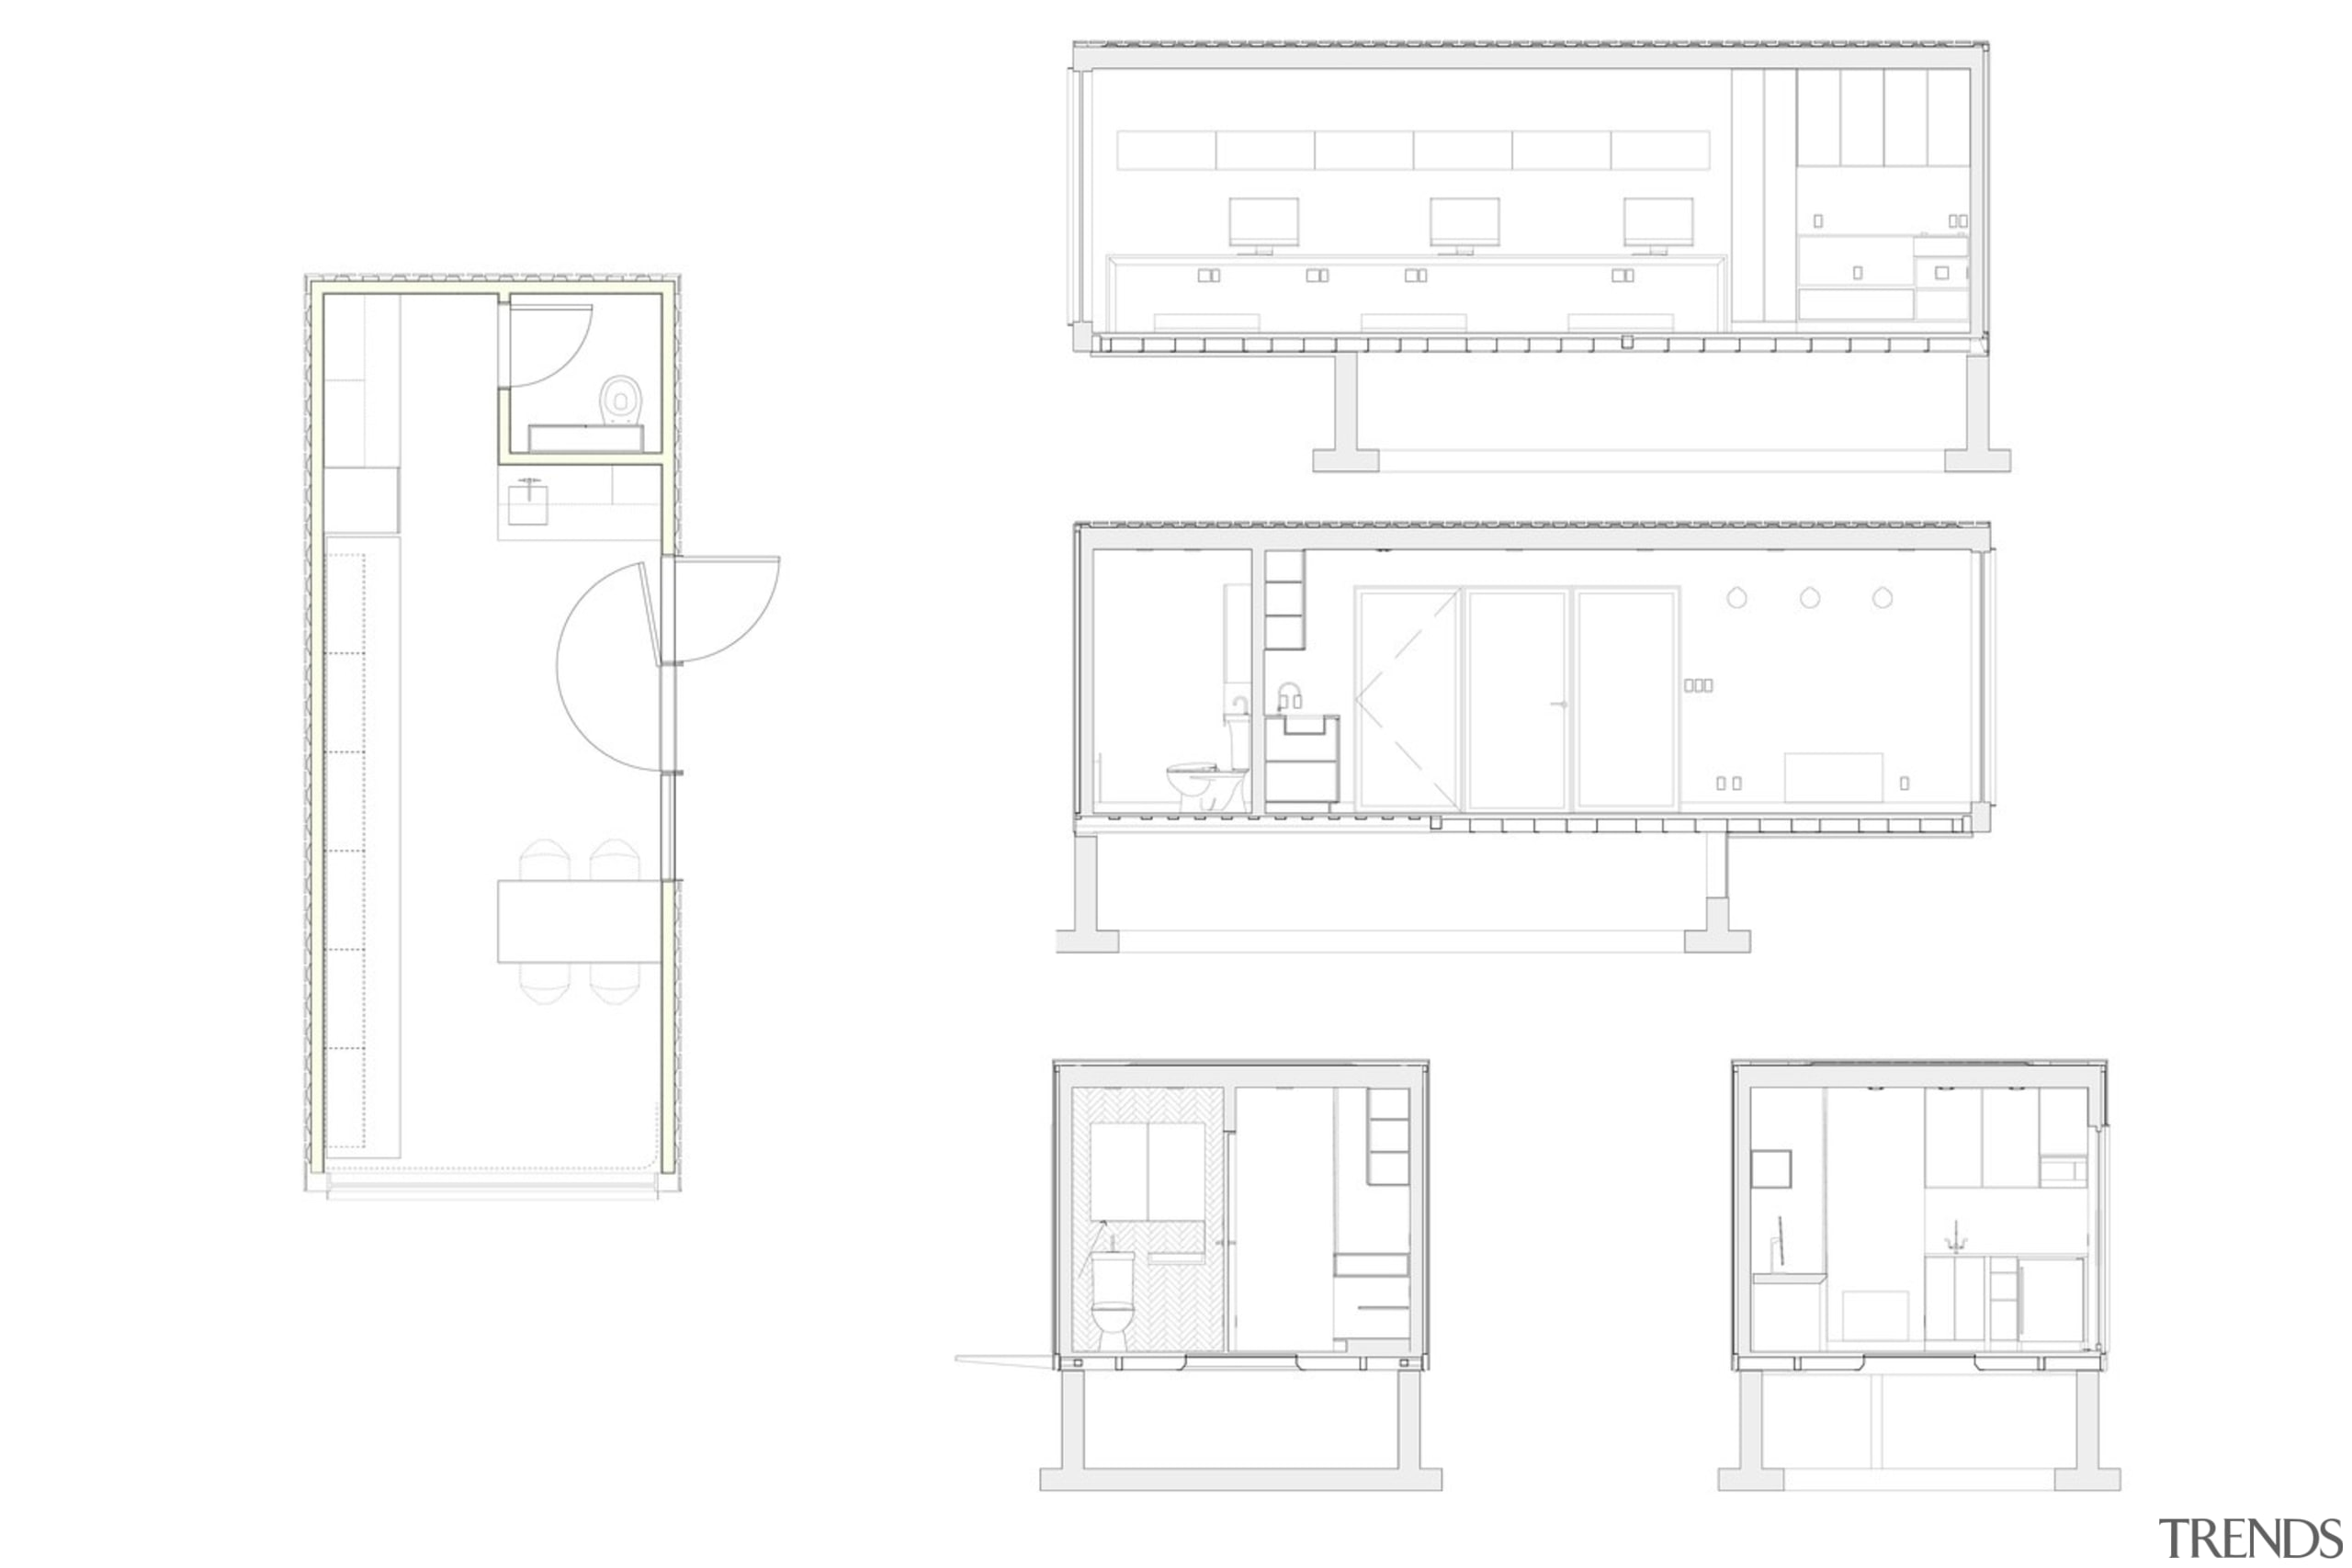 Architect in residence - angle | architecture | angle, architecture, area, design, diagram, drawing, elevation, floor plan, house, line, plan, product, property, schematic, structure, white